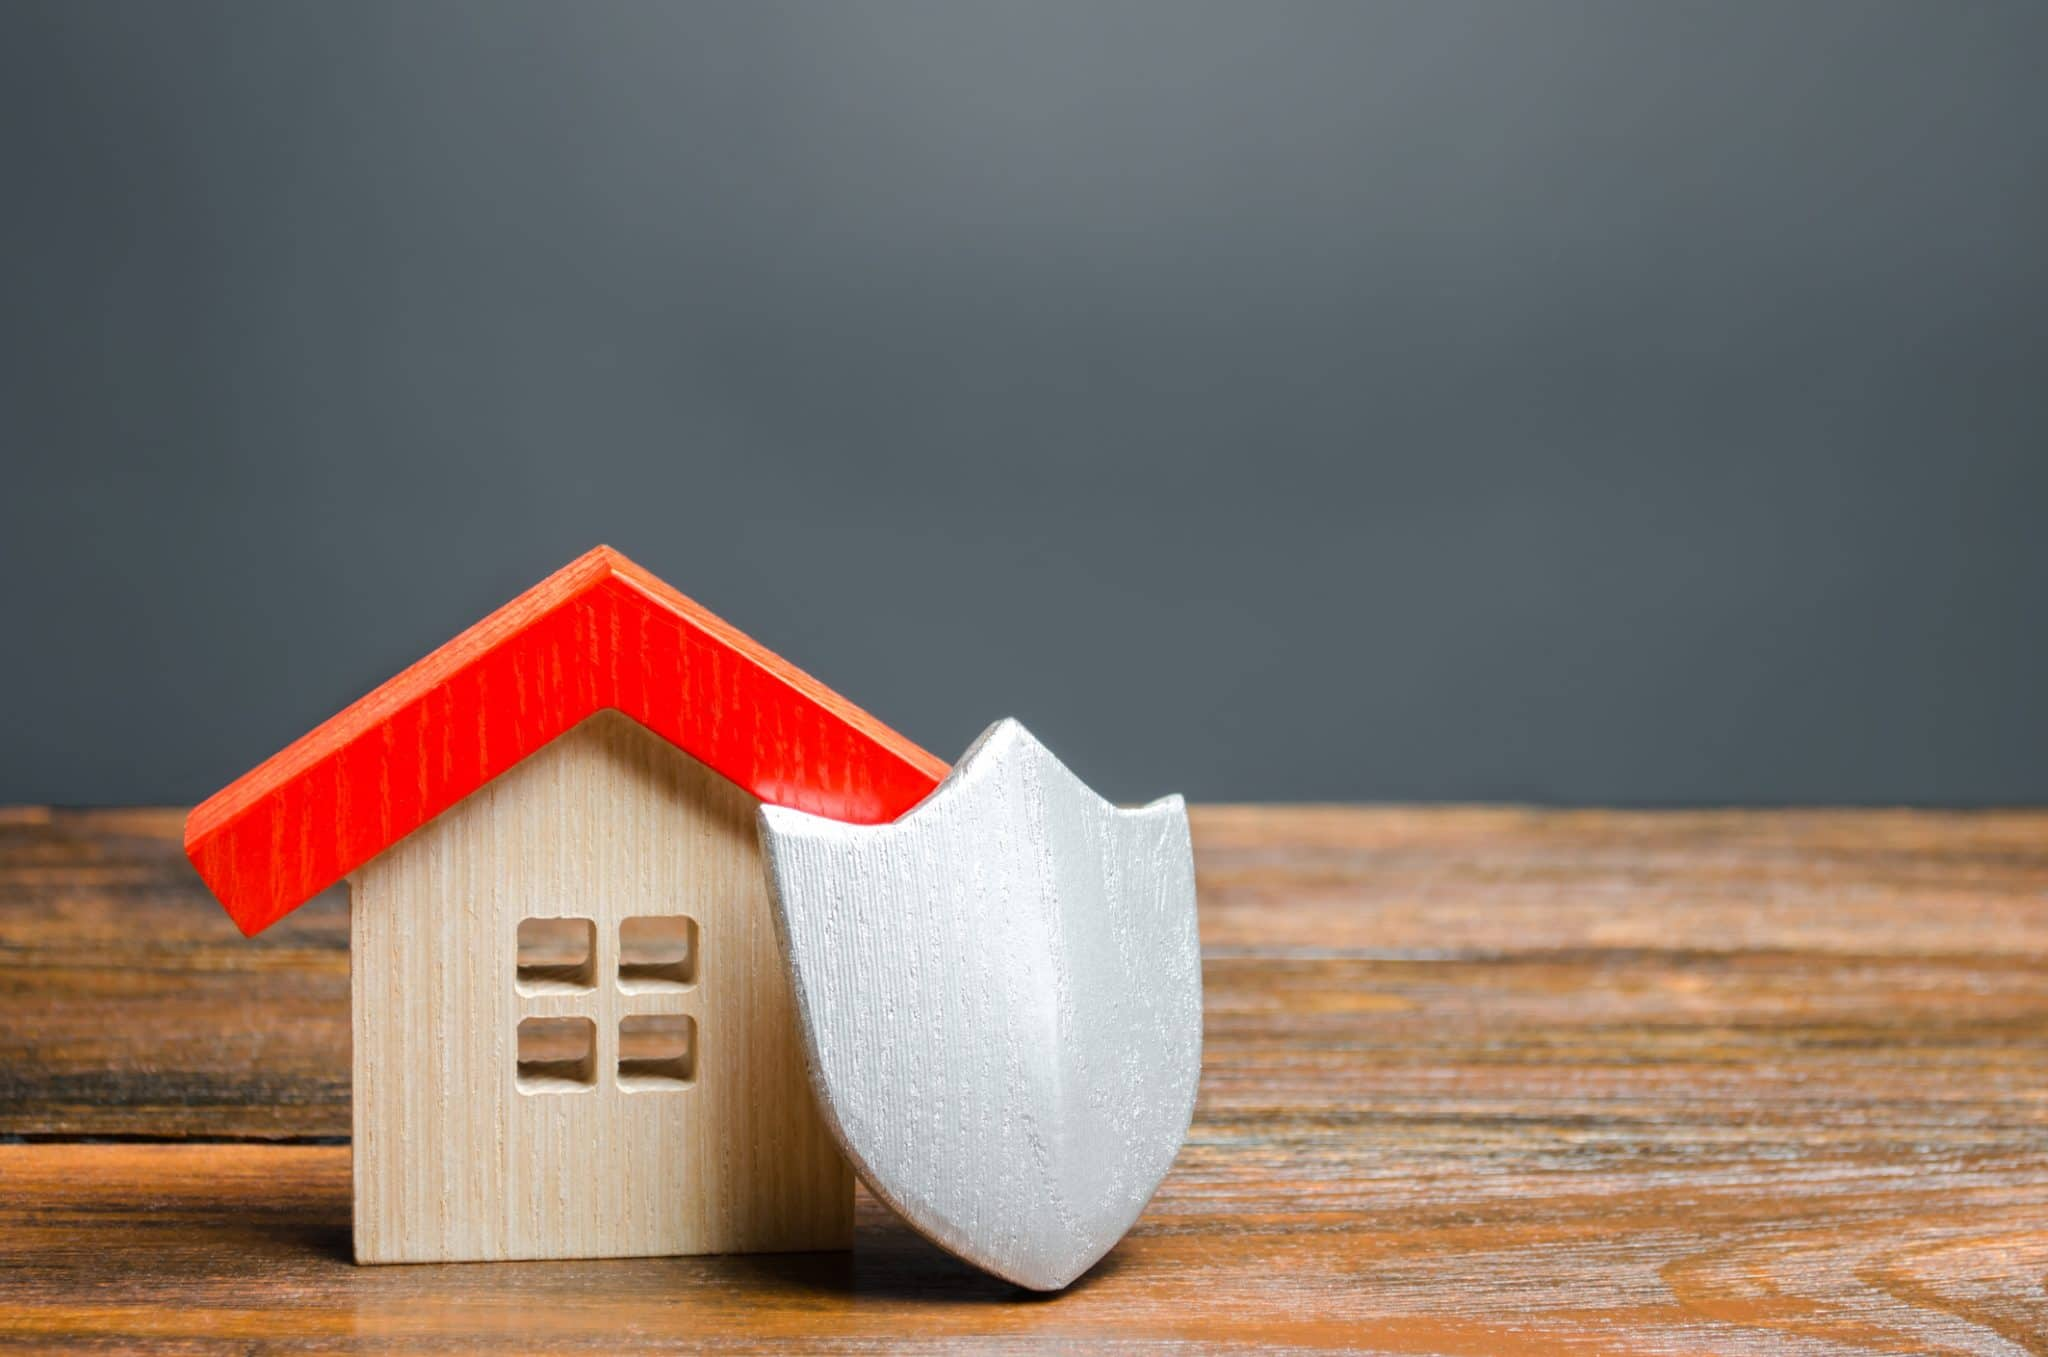 How to Make Your Home More Safe and Secure